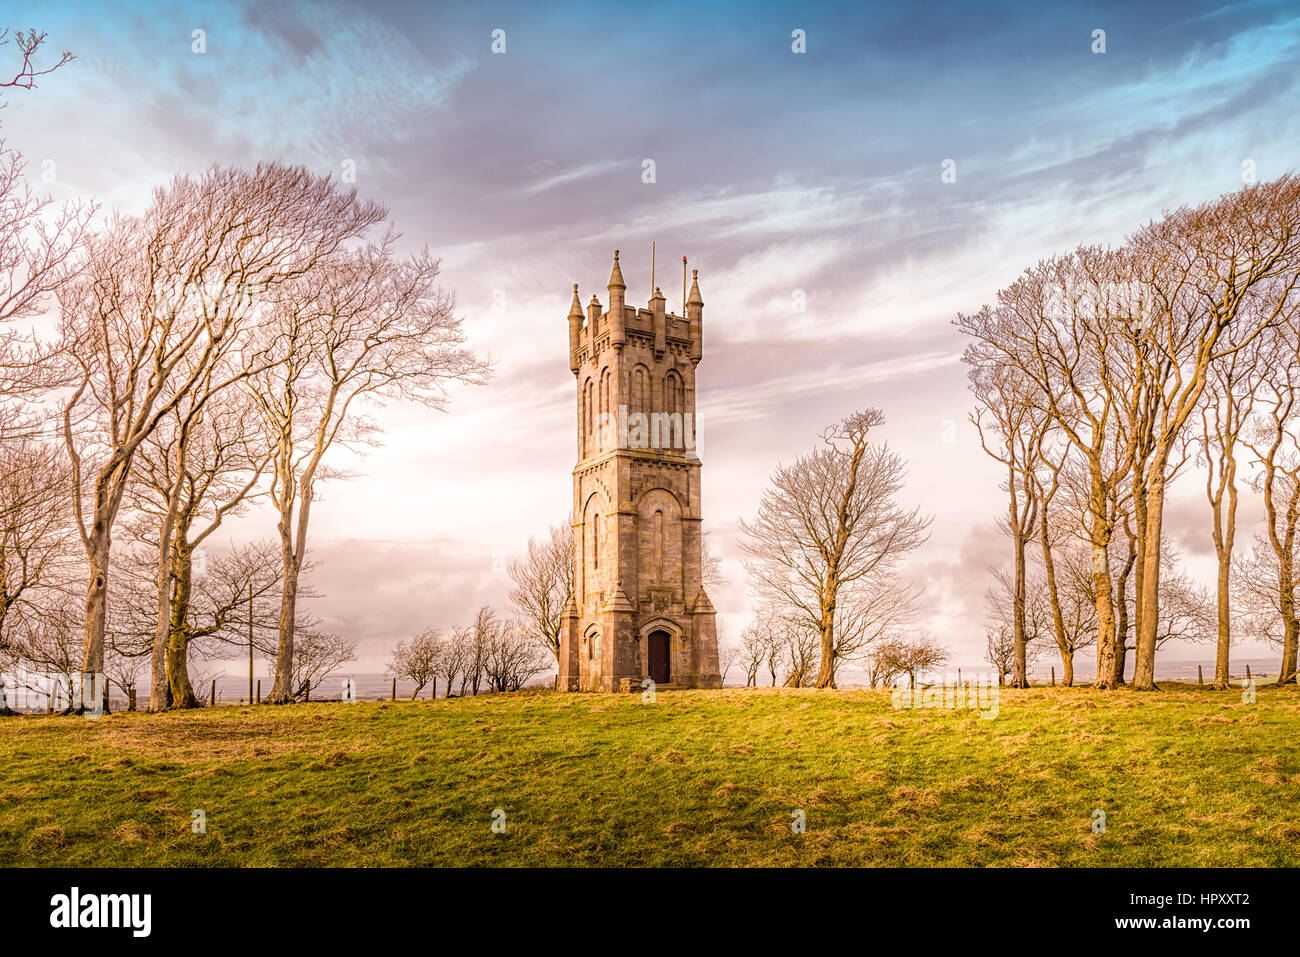 The Wallace Tower also Known as the Barnweil Tower in South Ayrshire Near the Scottish Town of Craigie. In Memory - Stock Image